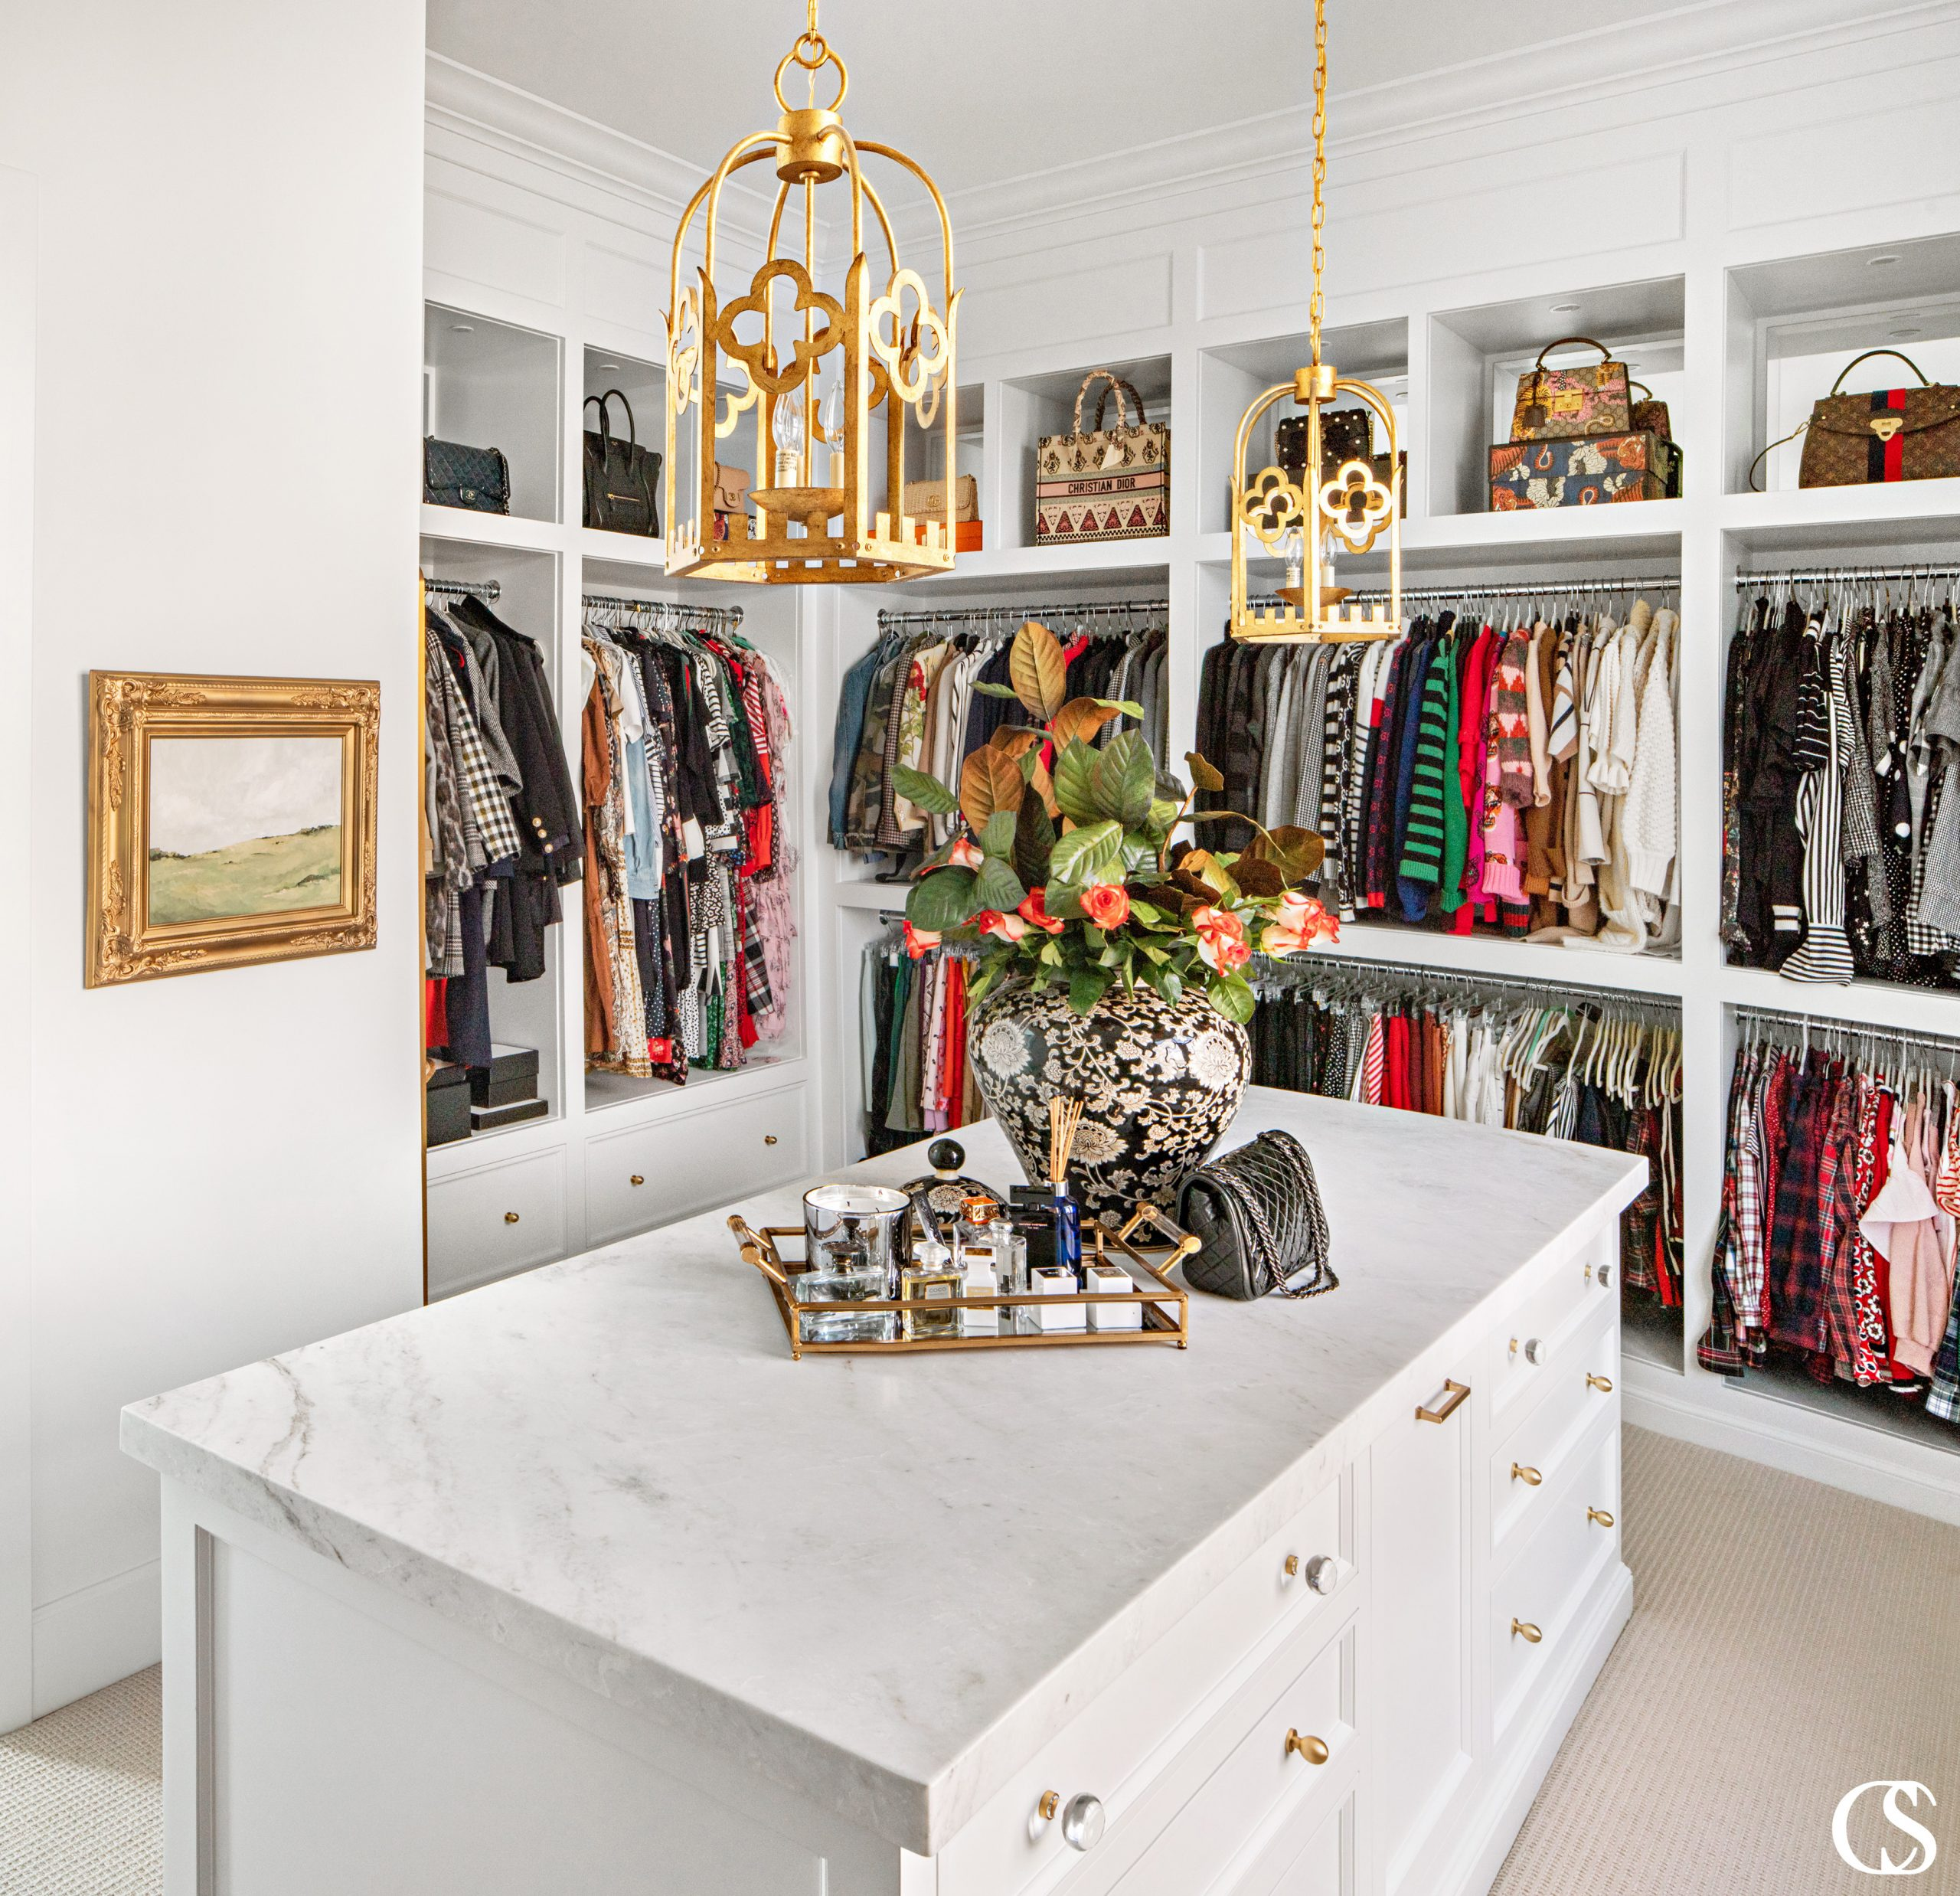 What do you think the best built in cabinets for a closet should entail? We love adding plenty of space for hanging items, but also open shelves for displaying accessories and an island of drawers for delicates and jewelry.